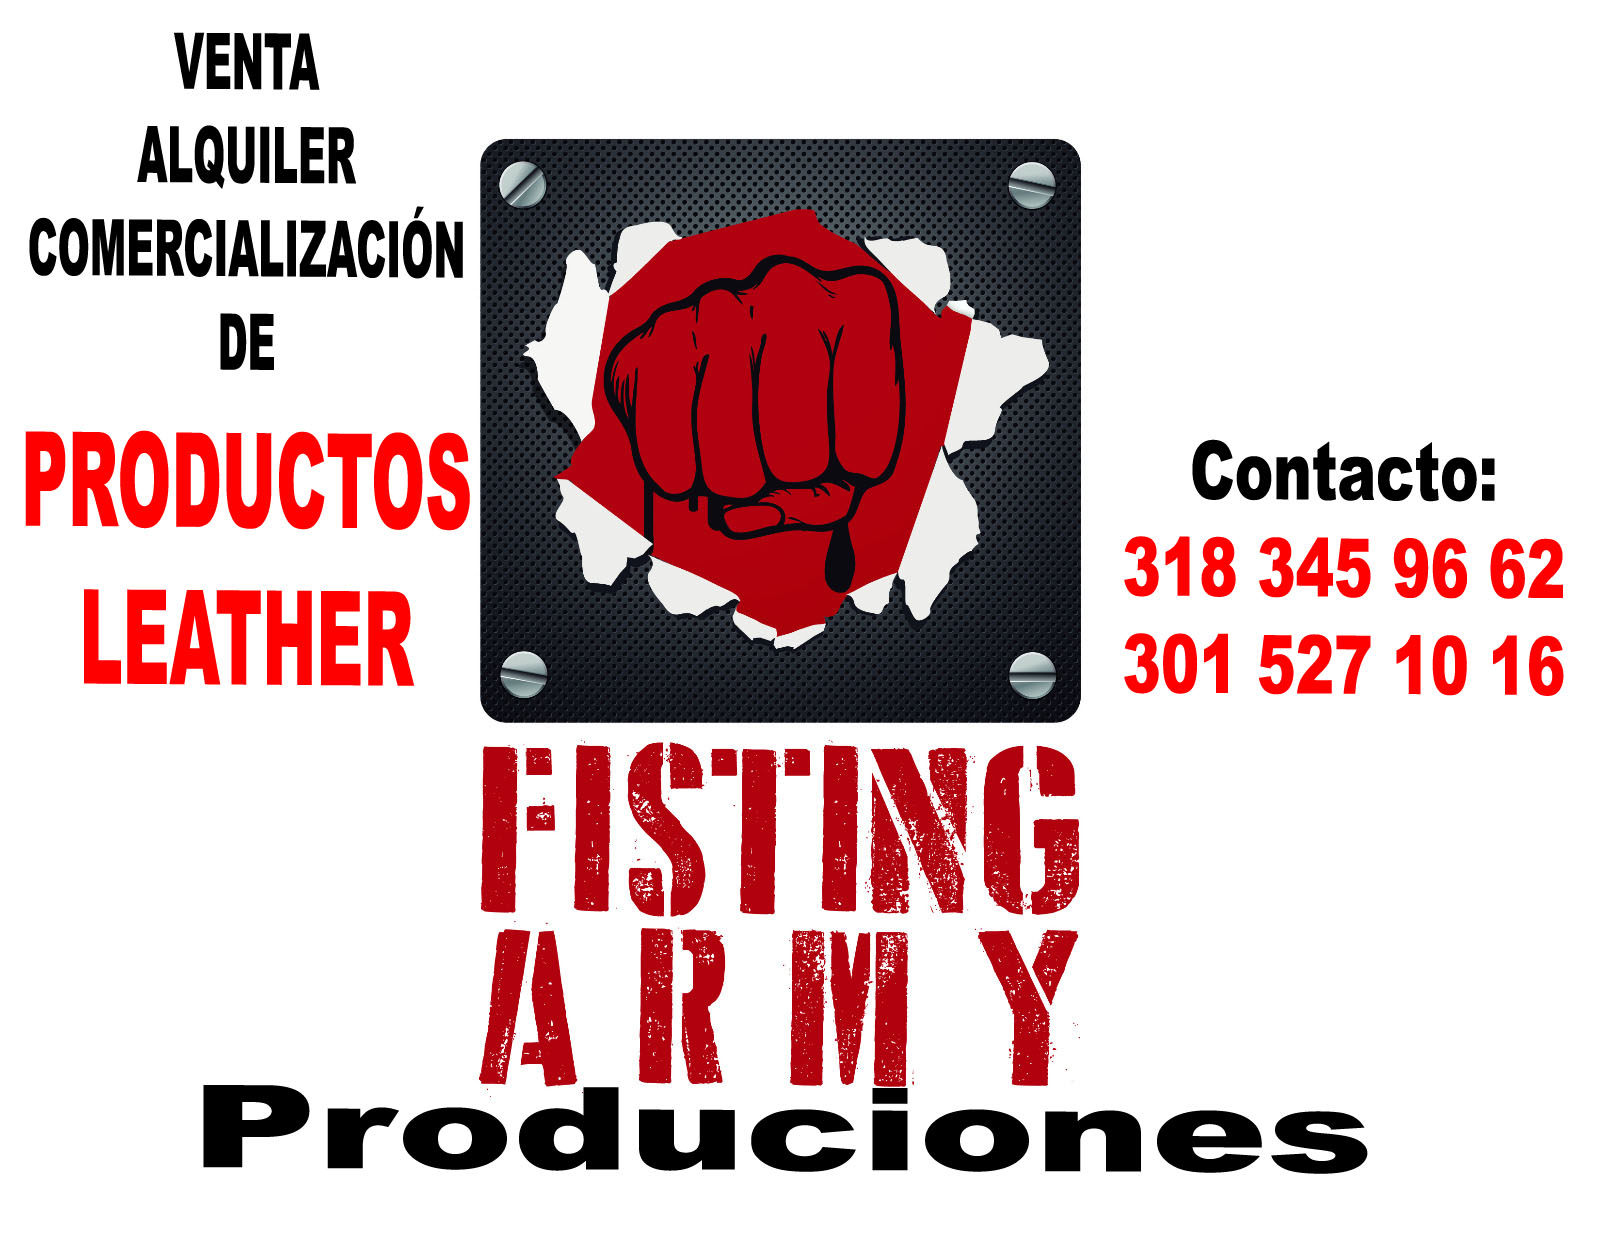 COMERCIALIZACIÓN DE PRODUCTOS LEATHER.